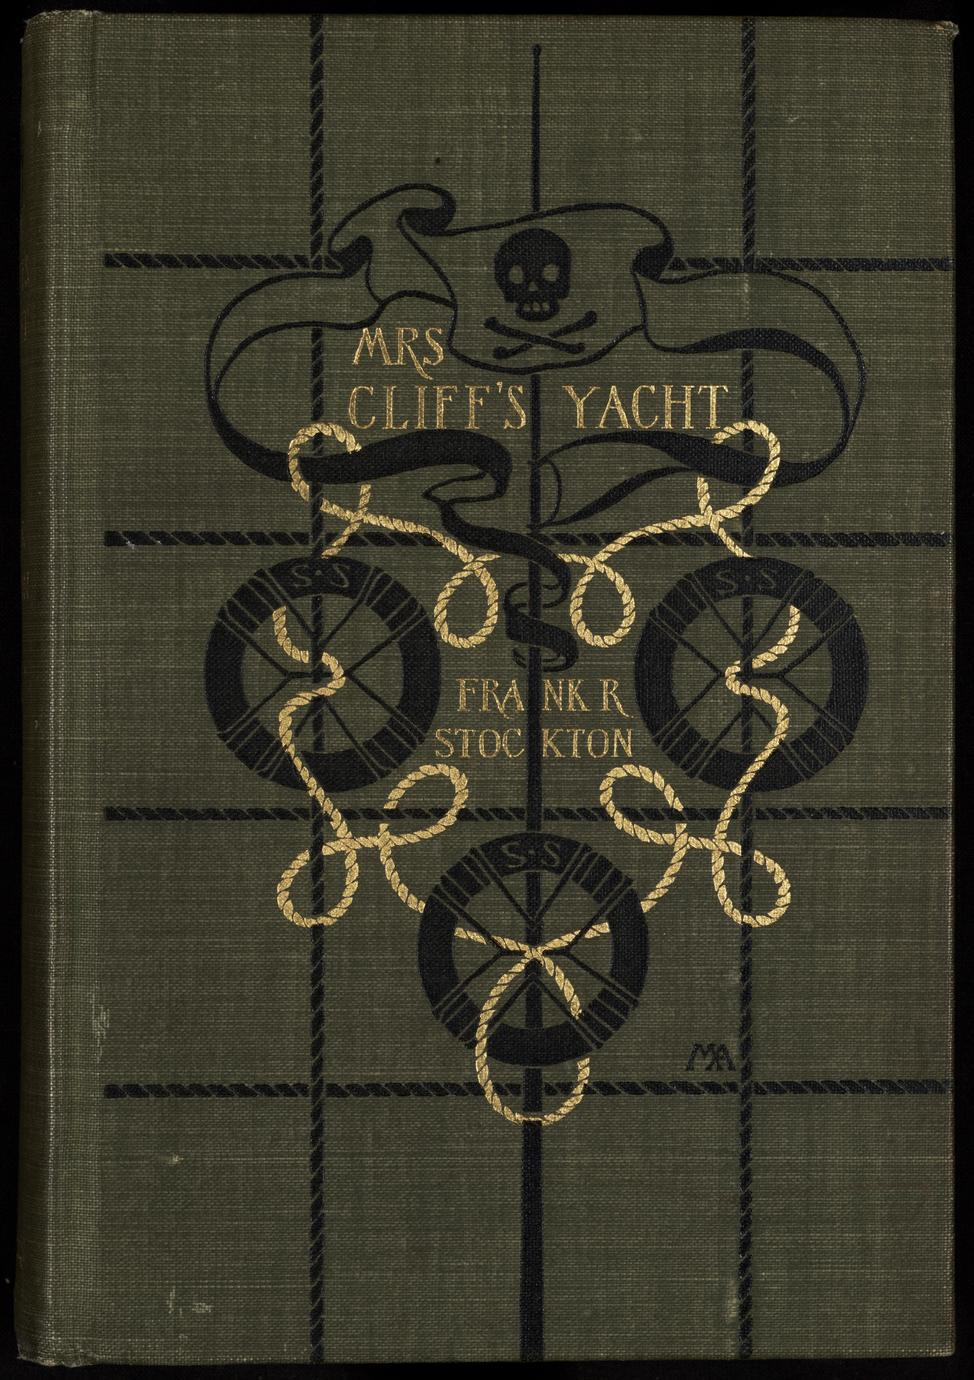 Mrs. Cliff's yacht (1 of 3)